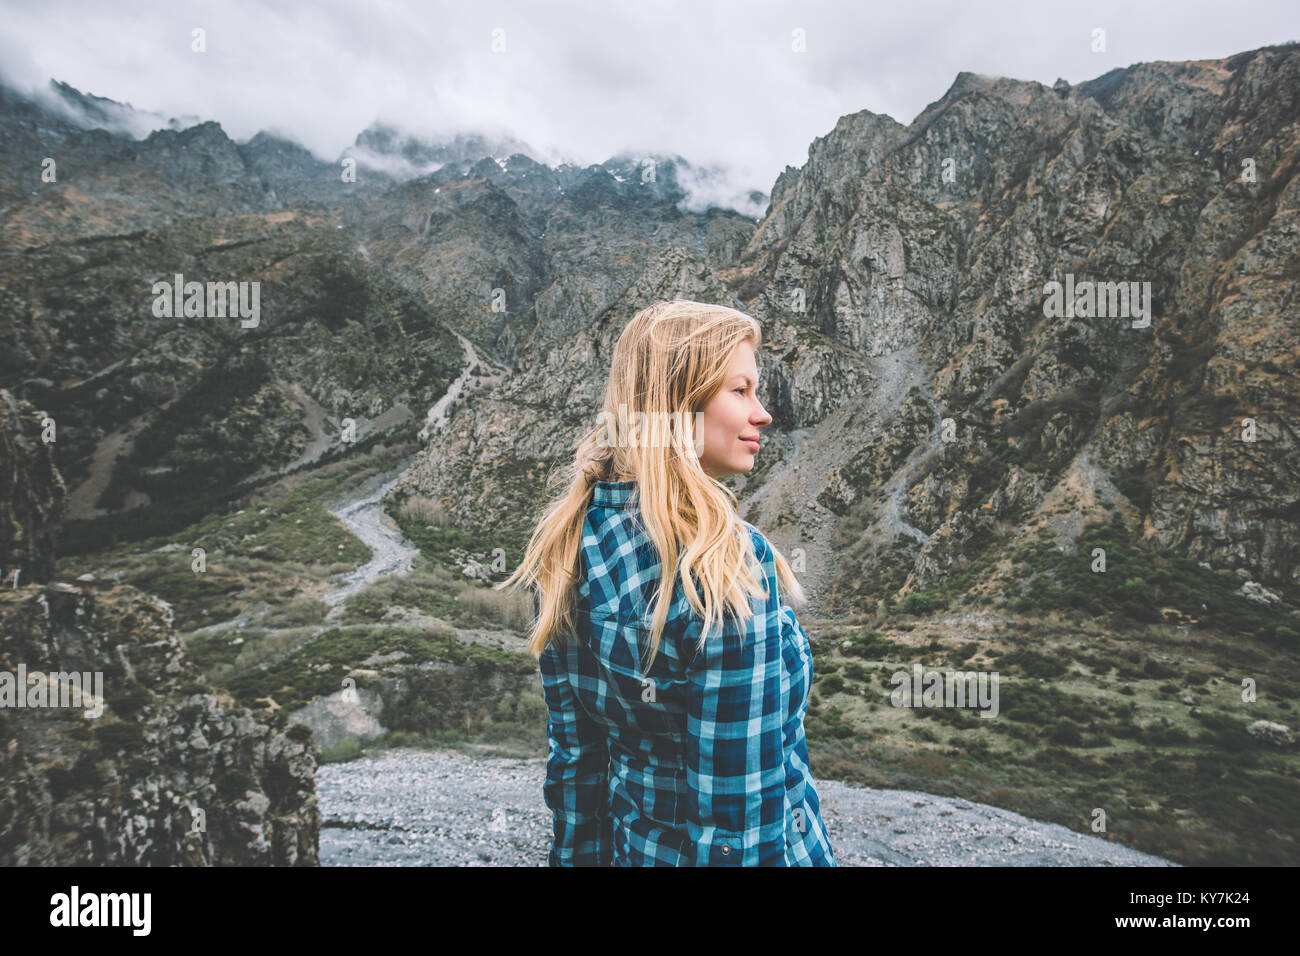 Woman tourist traveling in foggy mountains Lifestyle concept adventure vacations outdoor - Stock Image